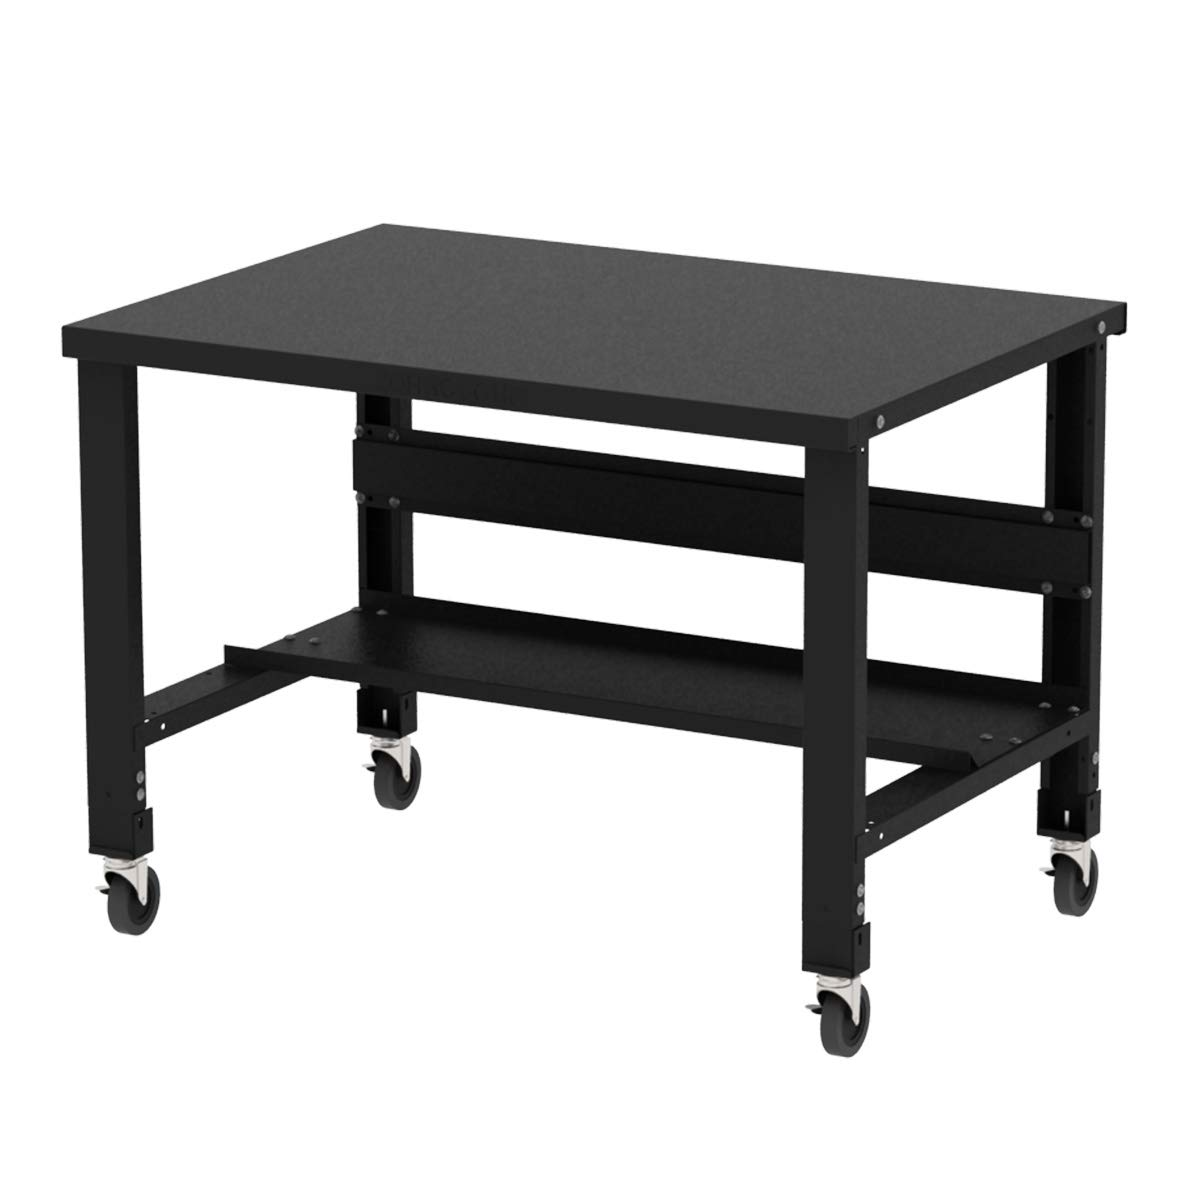 Borroughs Adjustable Height Stainless Steel Top Workbench with Caster Kit, 34 in x 48 in